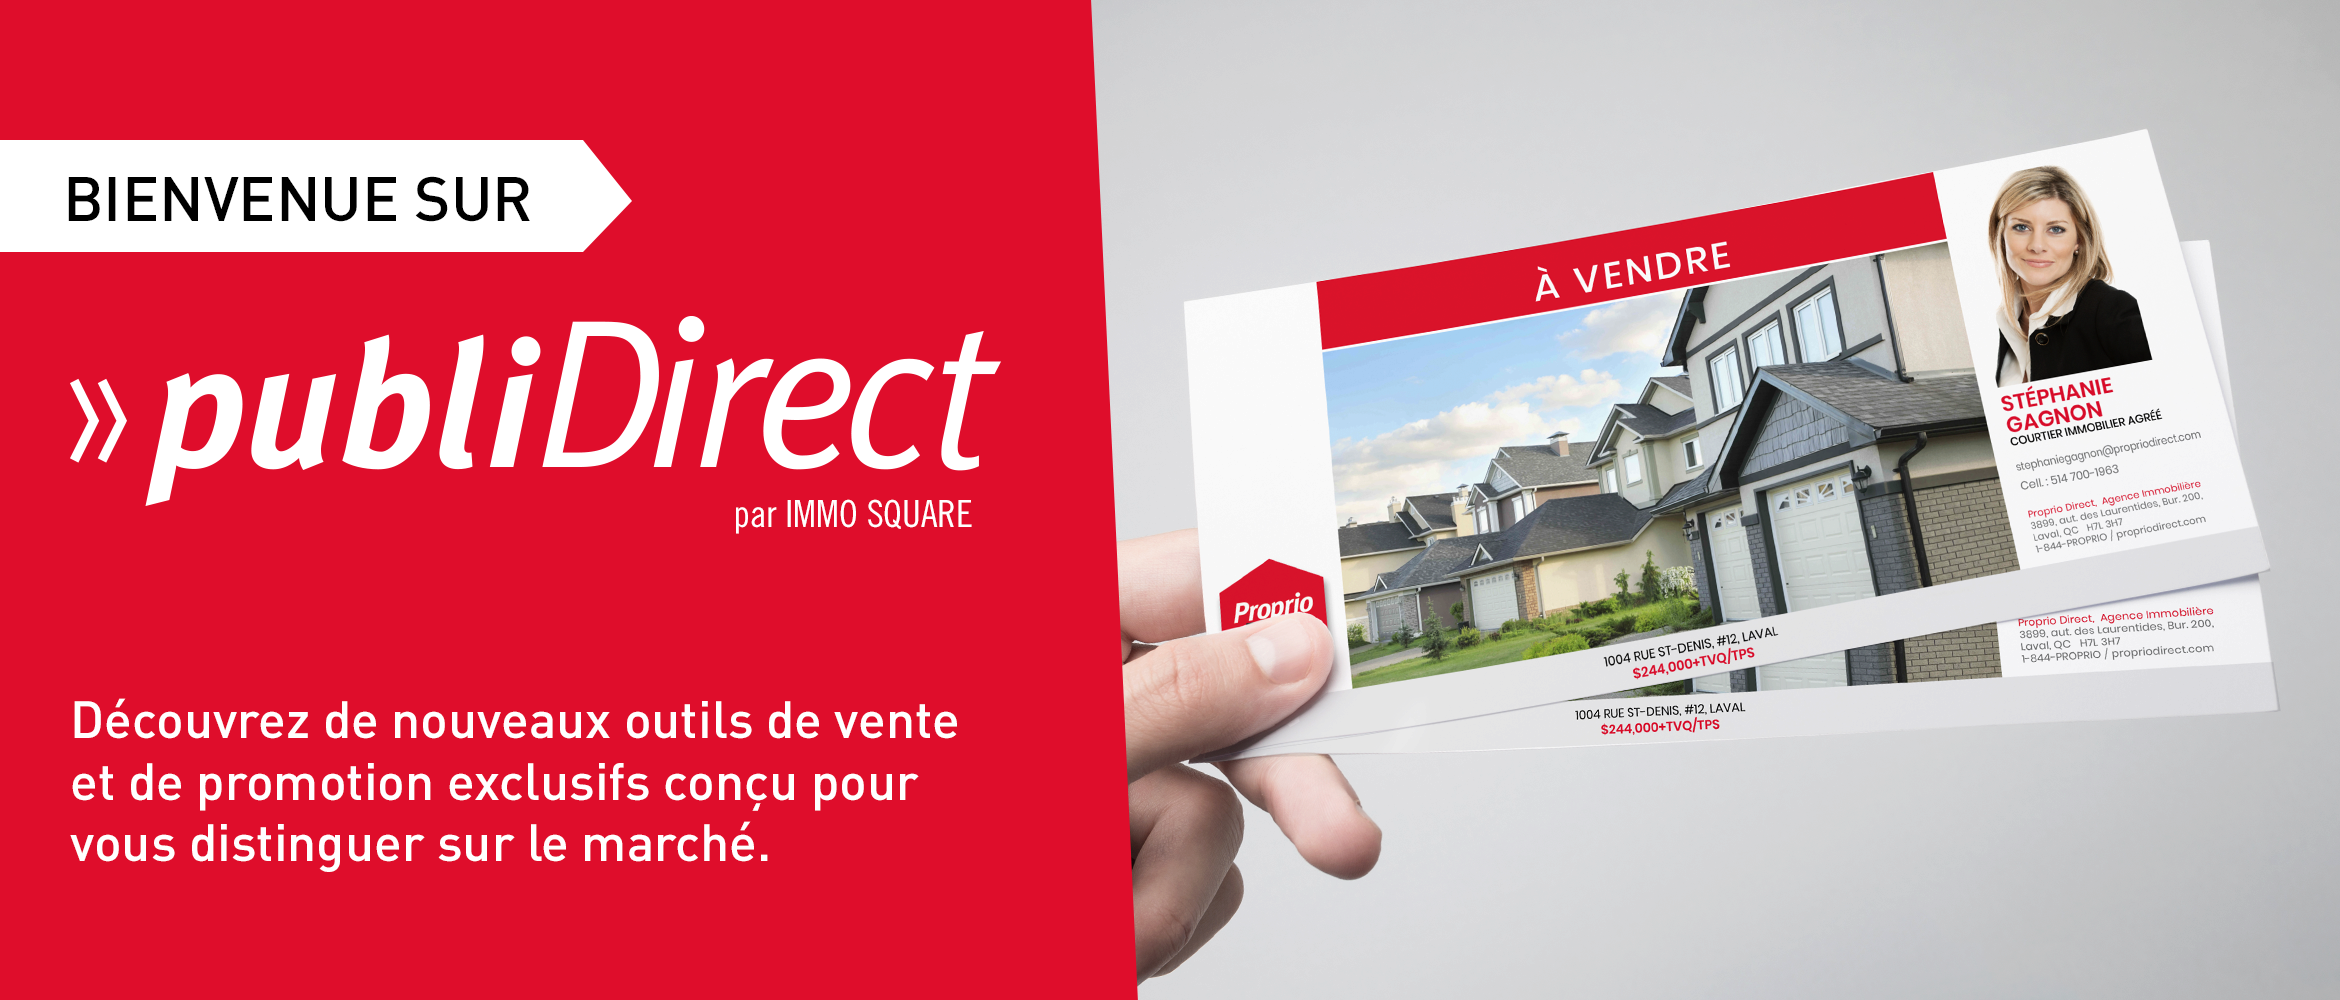 Bienvenue sur PubliDirect